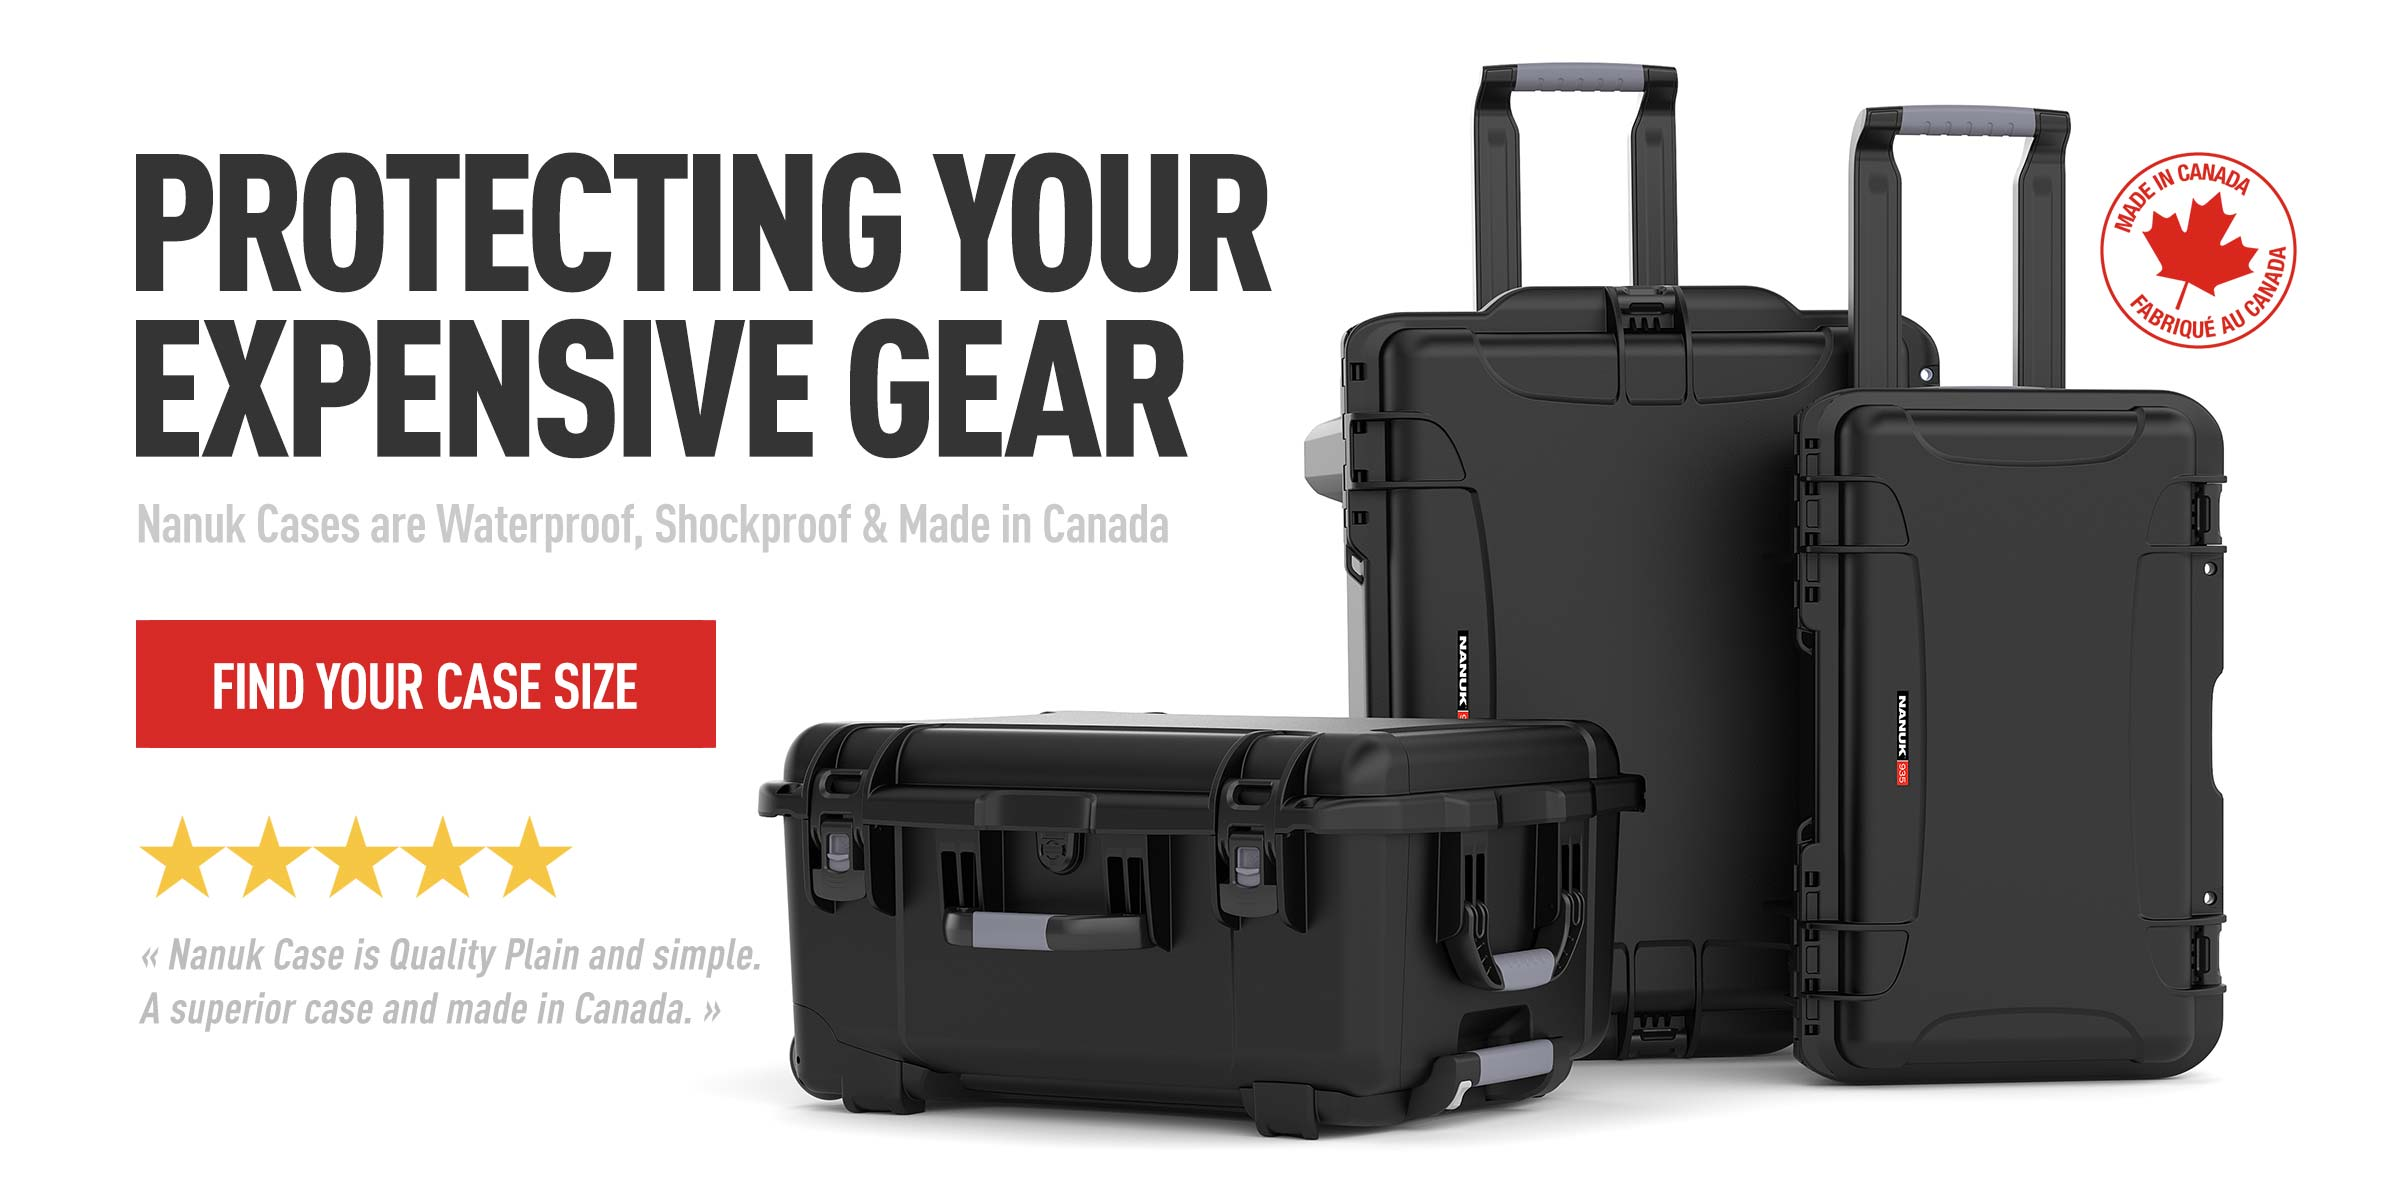 Protect Your Expensive Gear with Nanuk Hard Cases